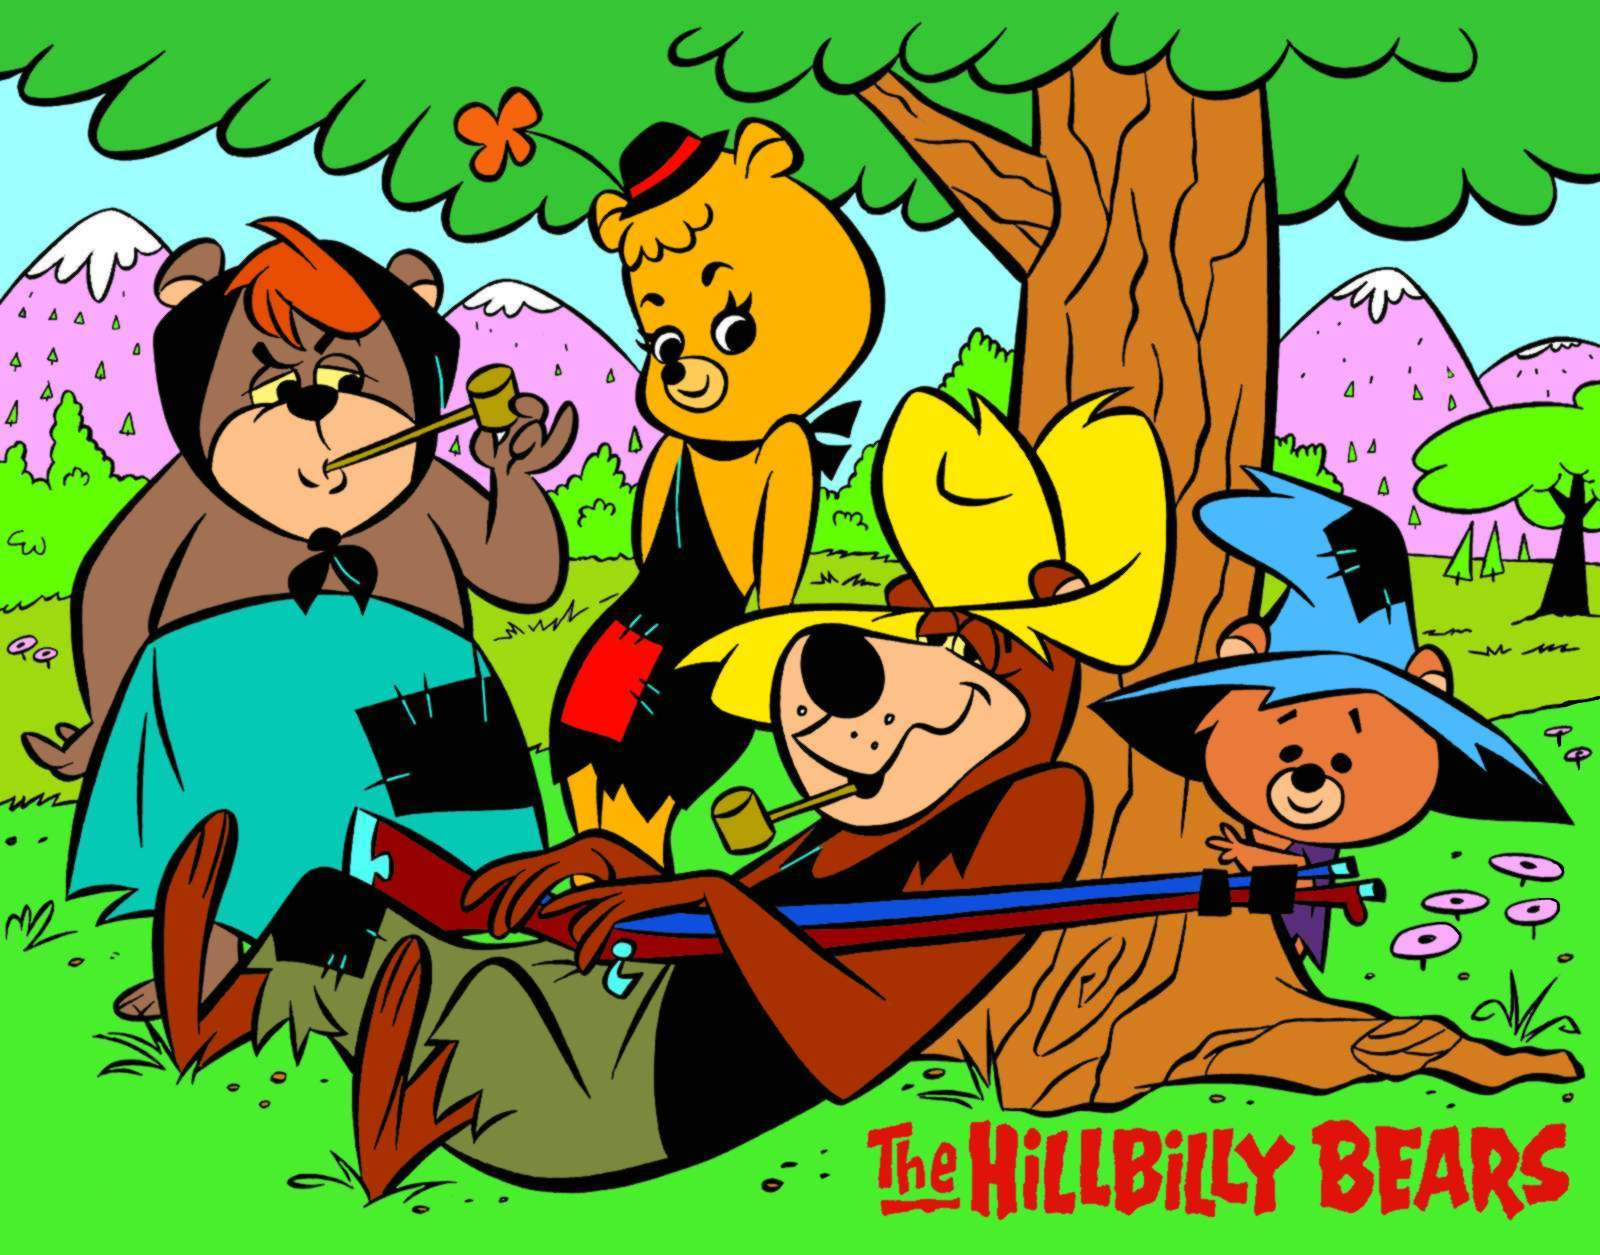 Cartoon Characters From The 70 S : Patrick owsley cartoon art hillbilly bears